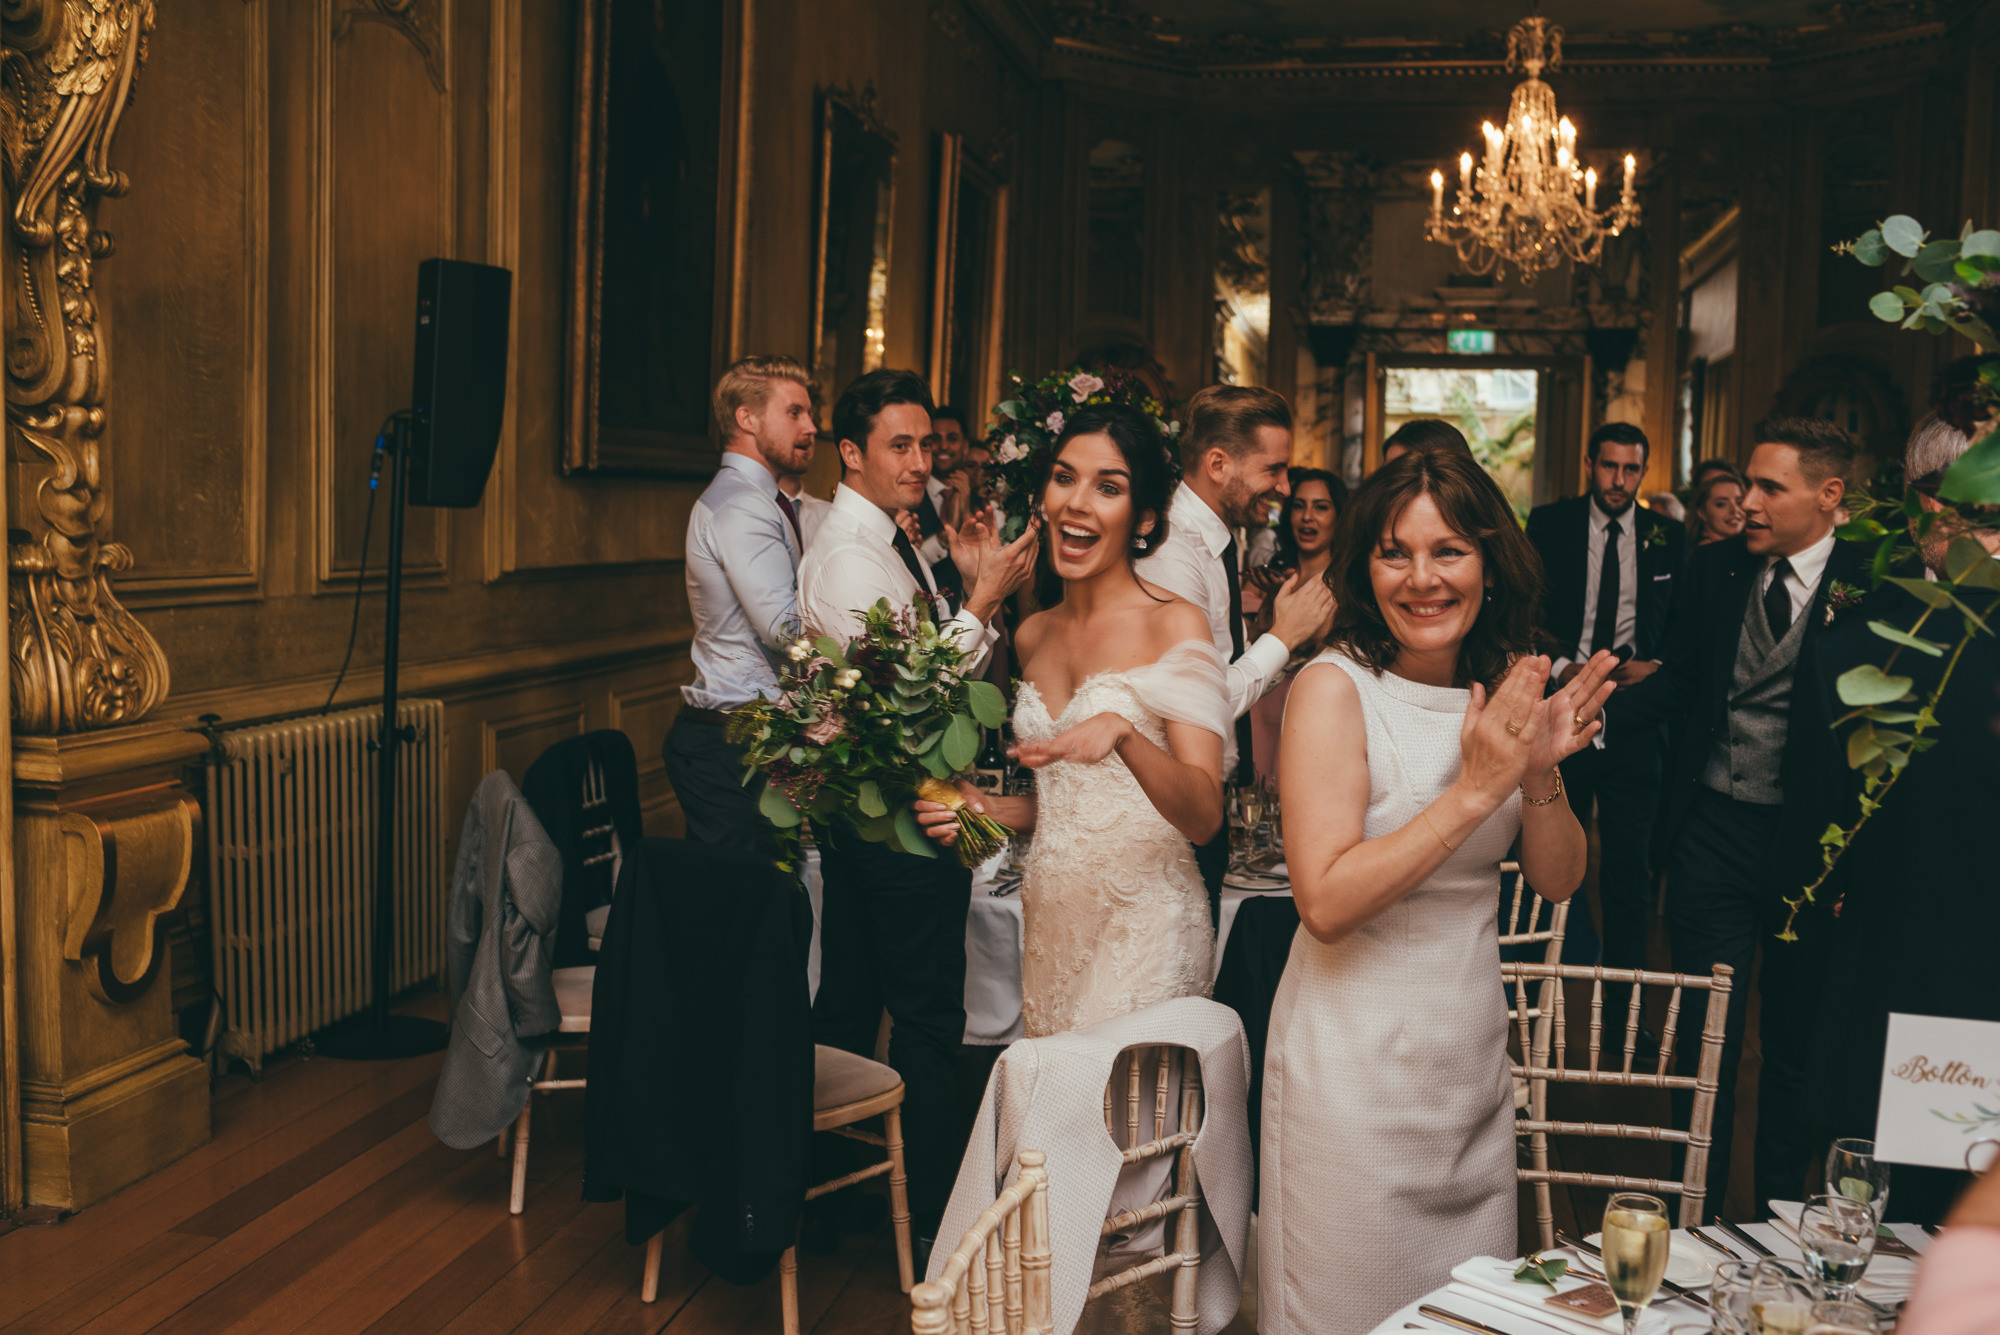 wedding guests cheer in the bride and groom